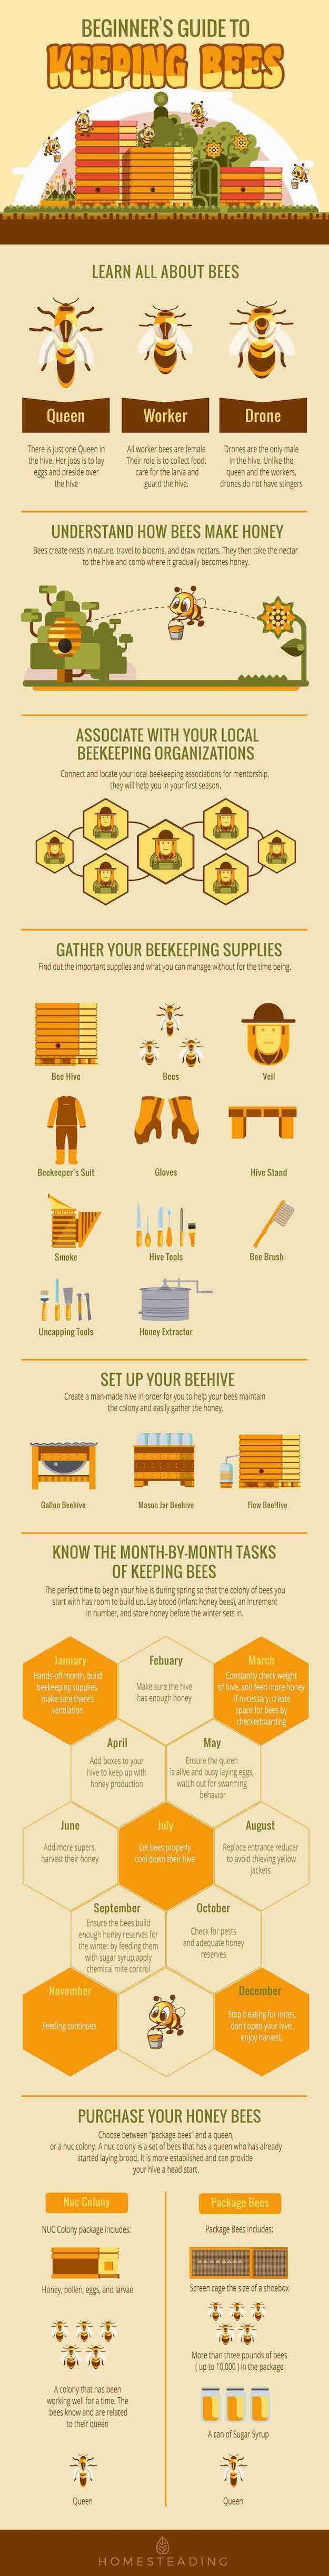 Beginner's Guide To Keeping Bees Beginners Guide To Keeping Bees